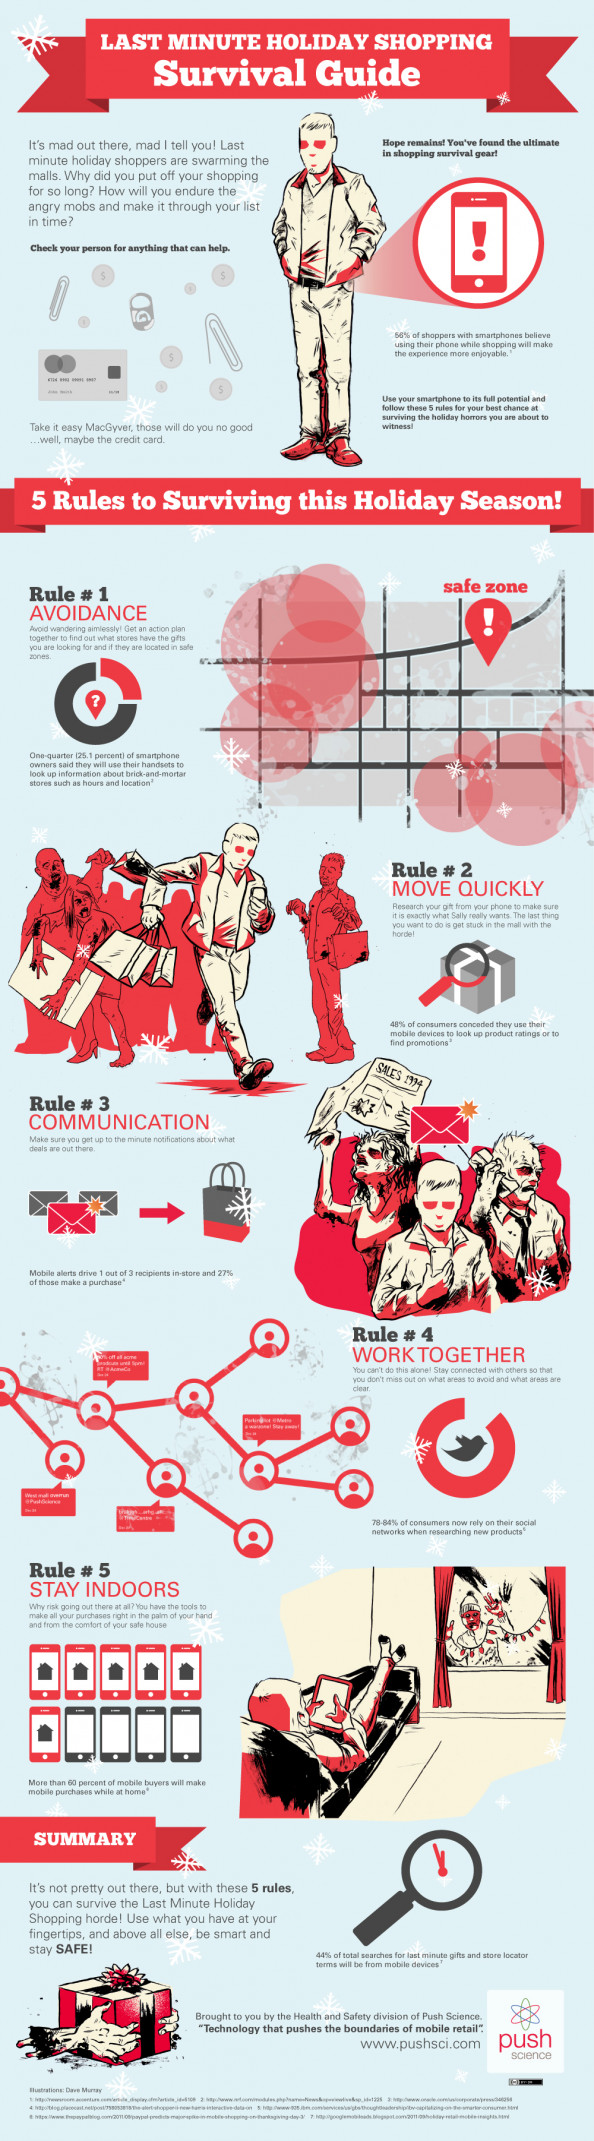 Holiday Mobile Shopping Survival Guide Infographic